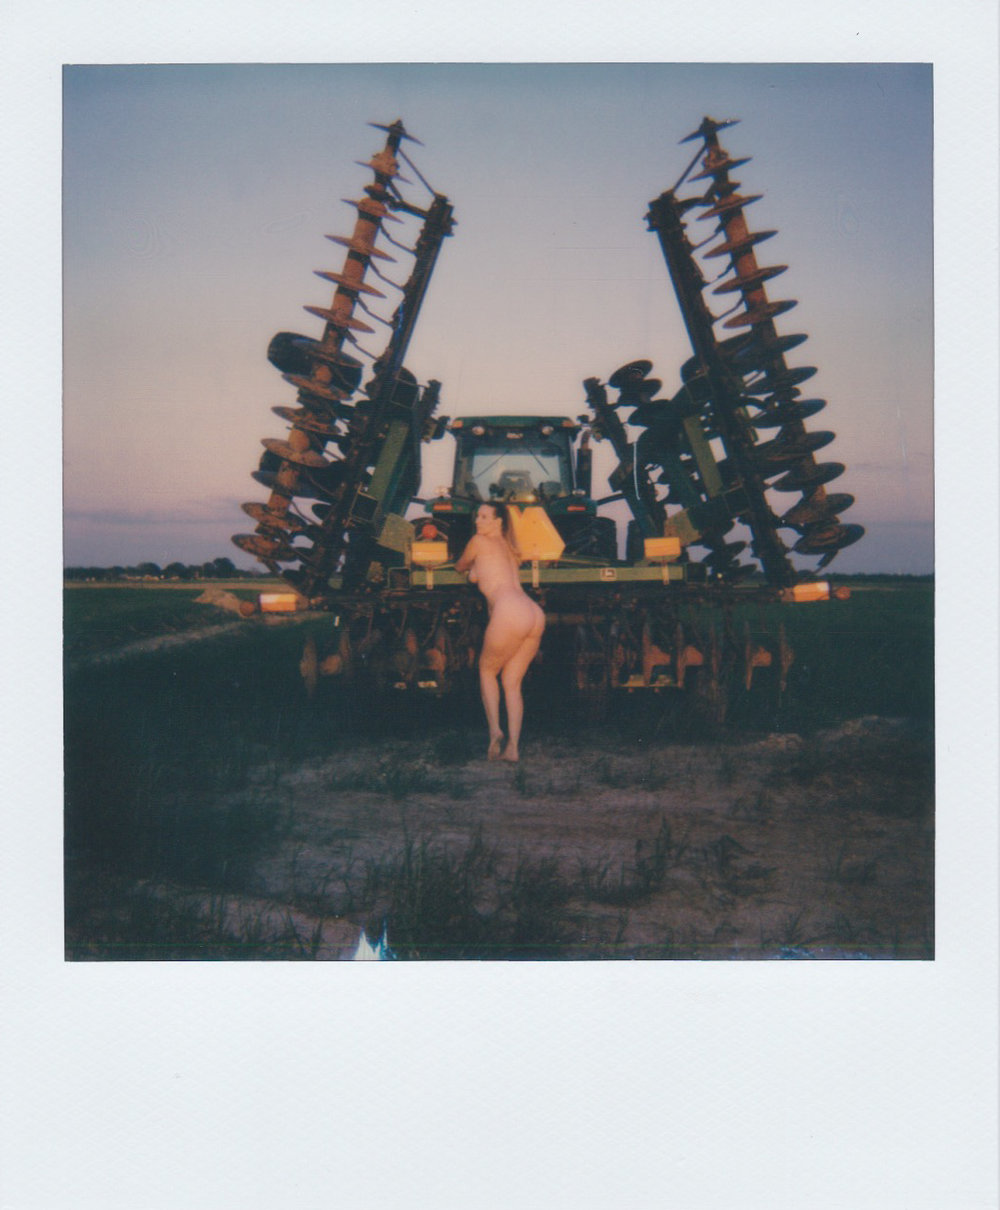 Polaroid project Day 2-7 by JW Purdy